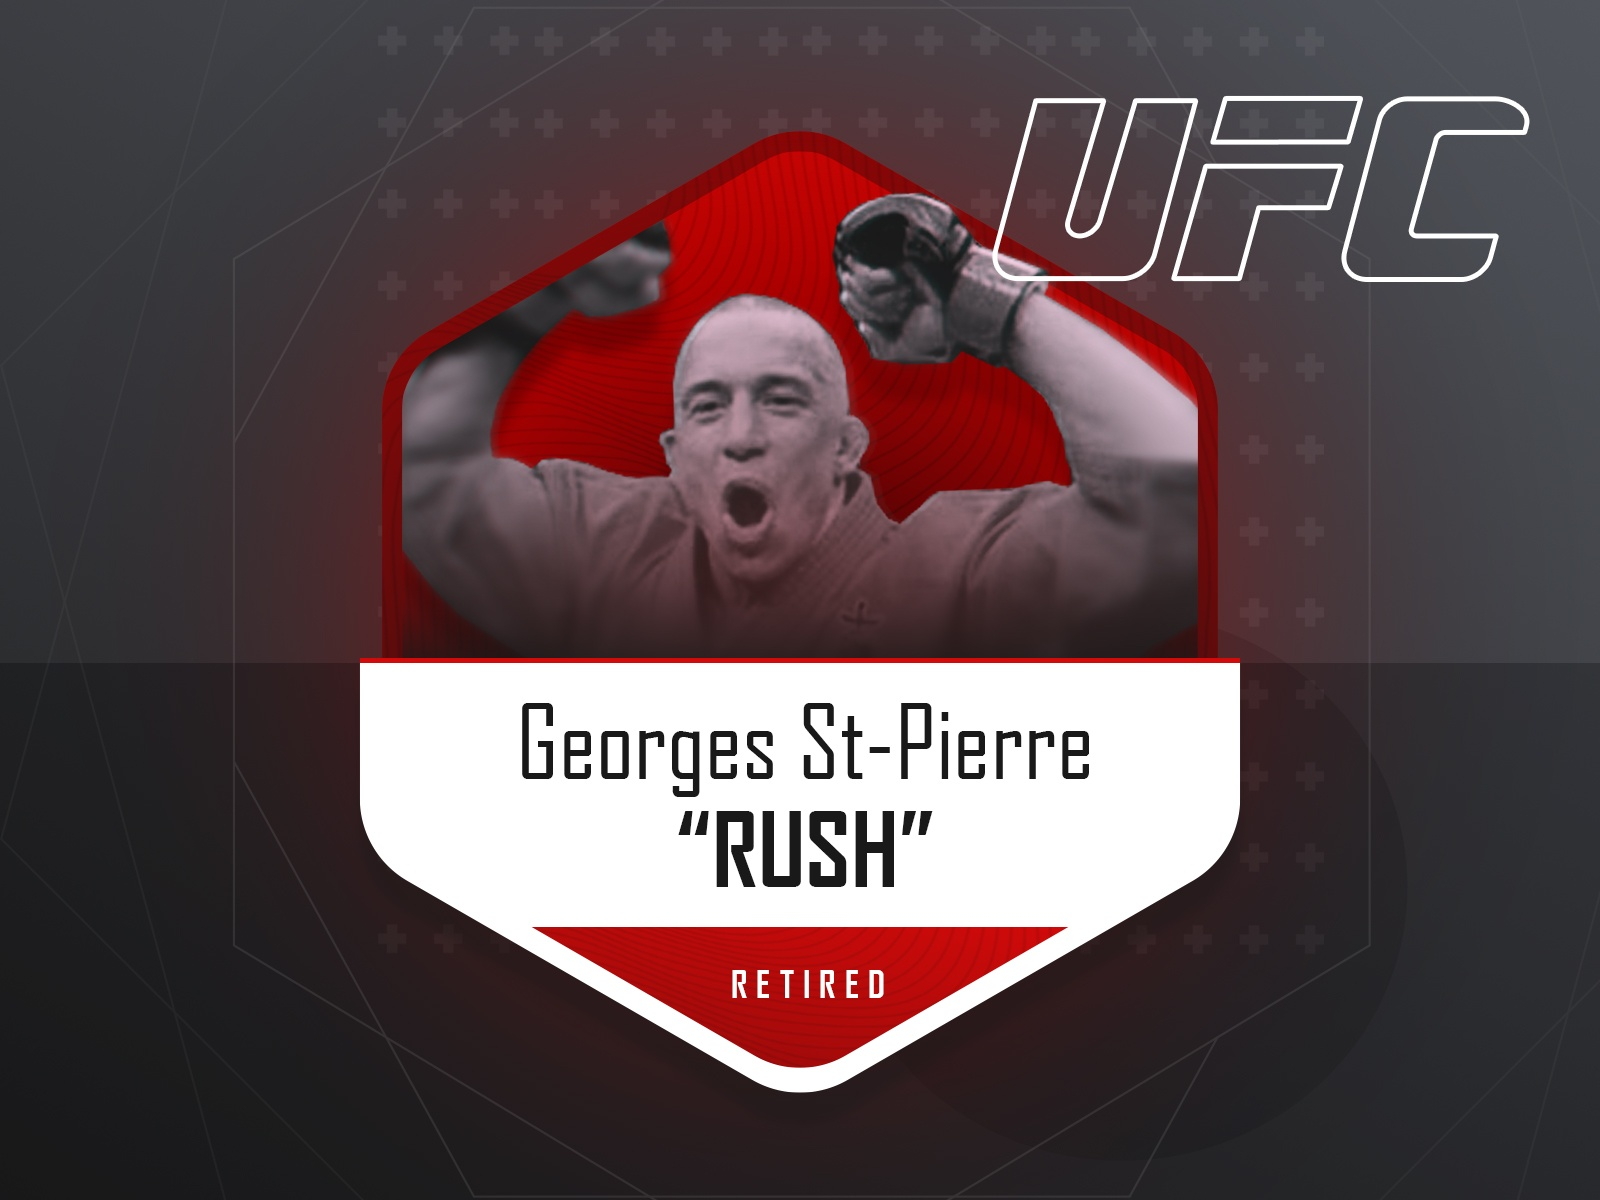 Georges St-Pierre - UFC fighter